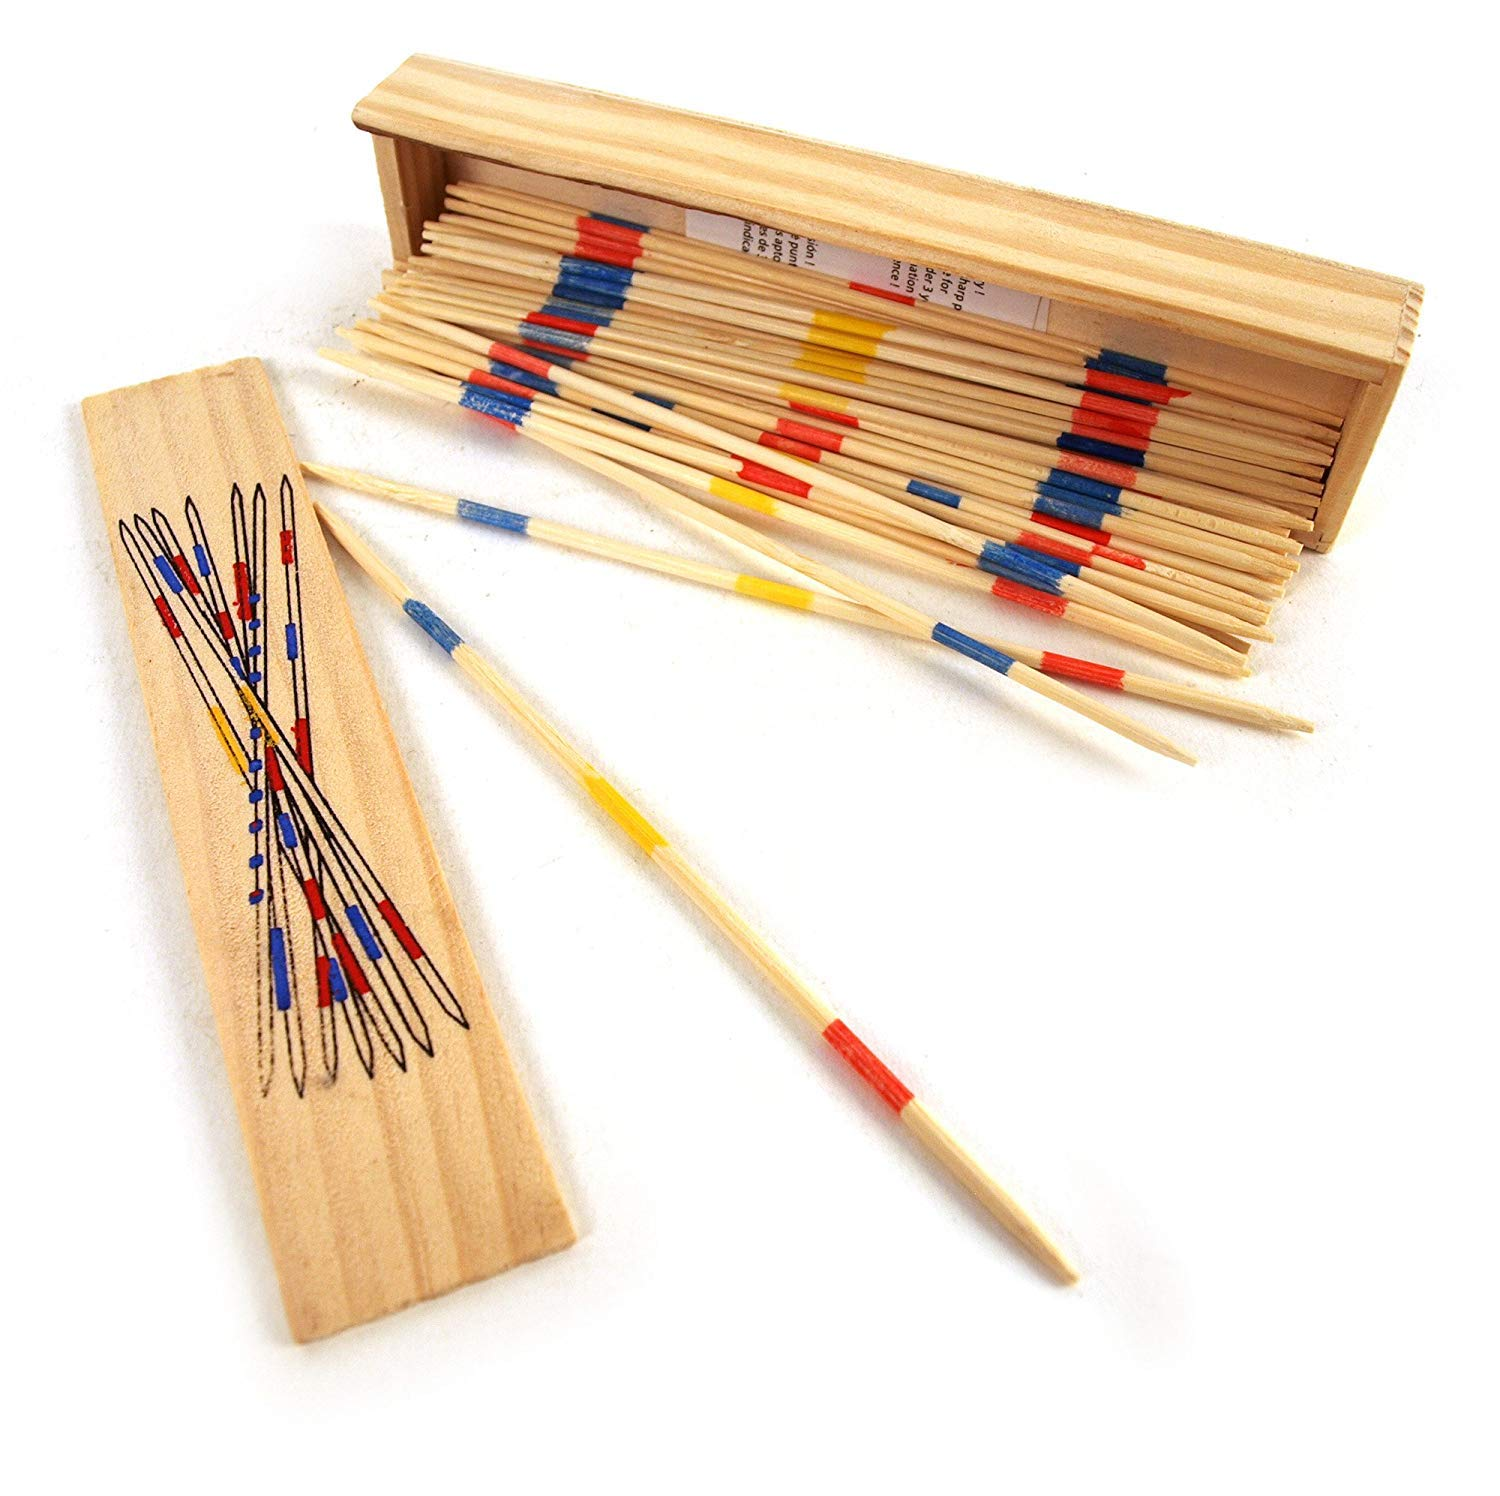 Mikado Spiel - The Traditional Game - 76/5208 OOTB